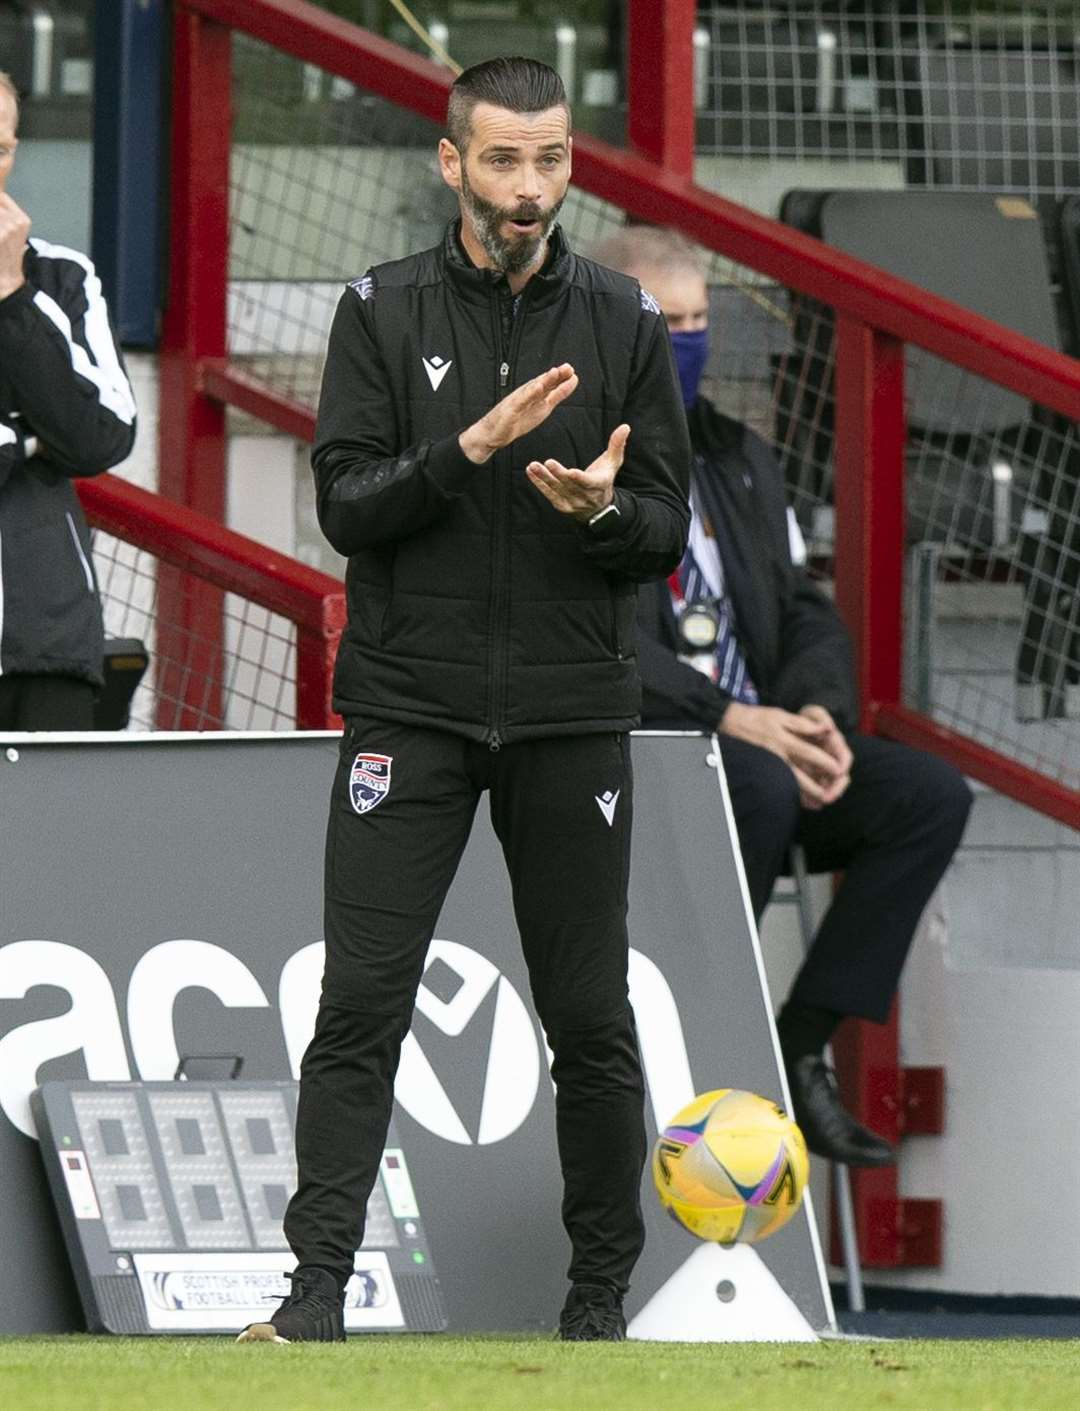 Picture - Ken Macpherson, Inverness. Ross County(0) v Aberdeen(3). 27.09.20. Ross County manager Stuart Kettlewell.